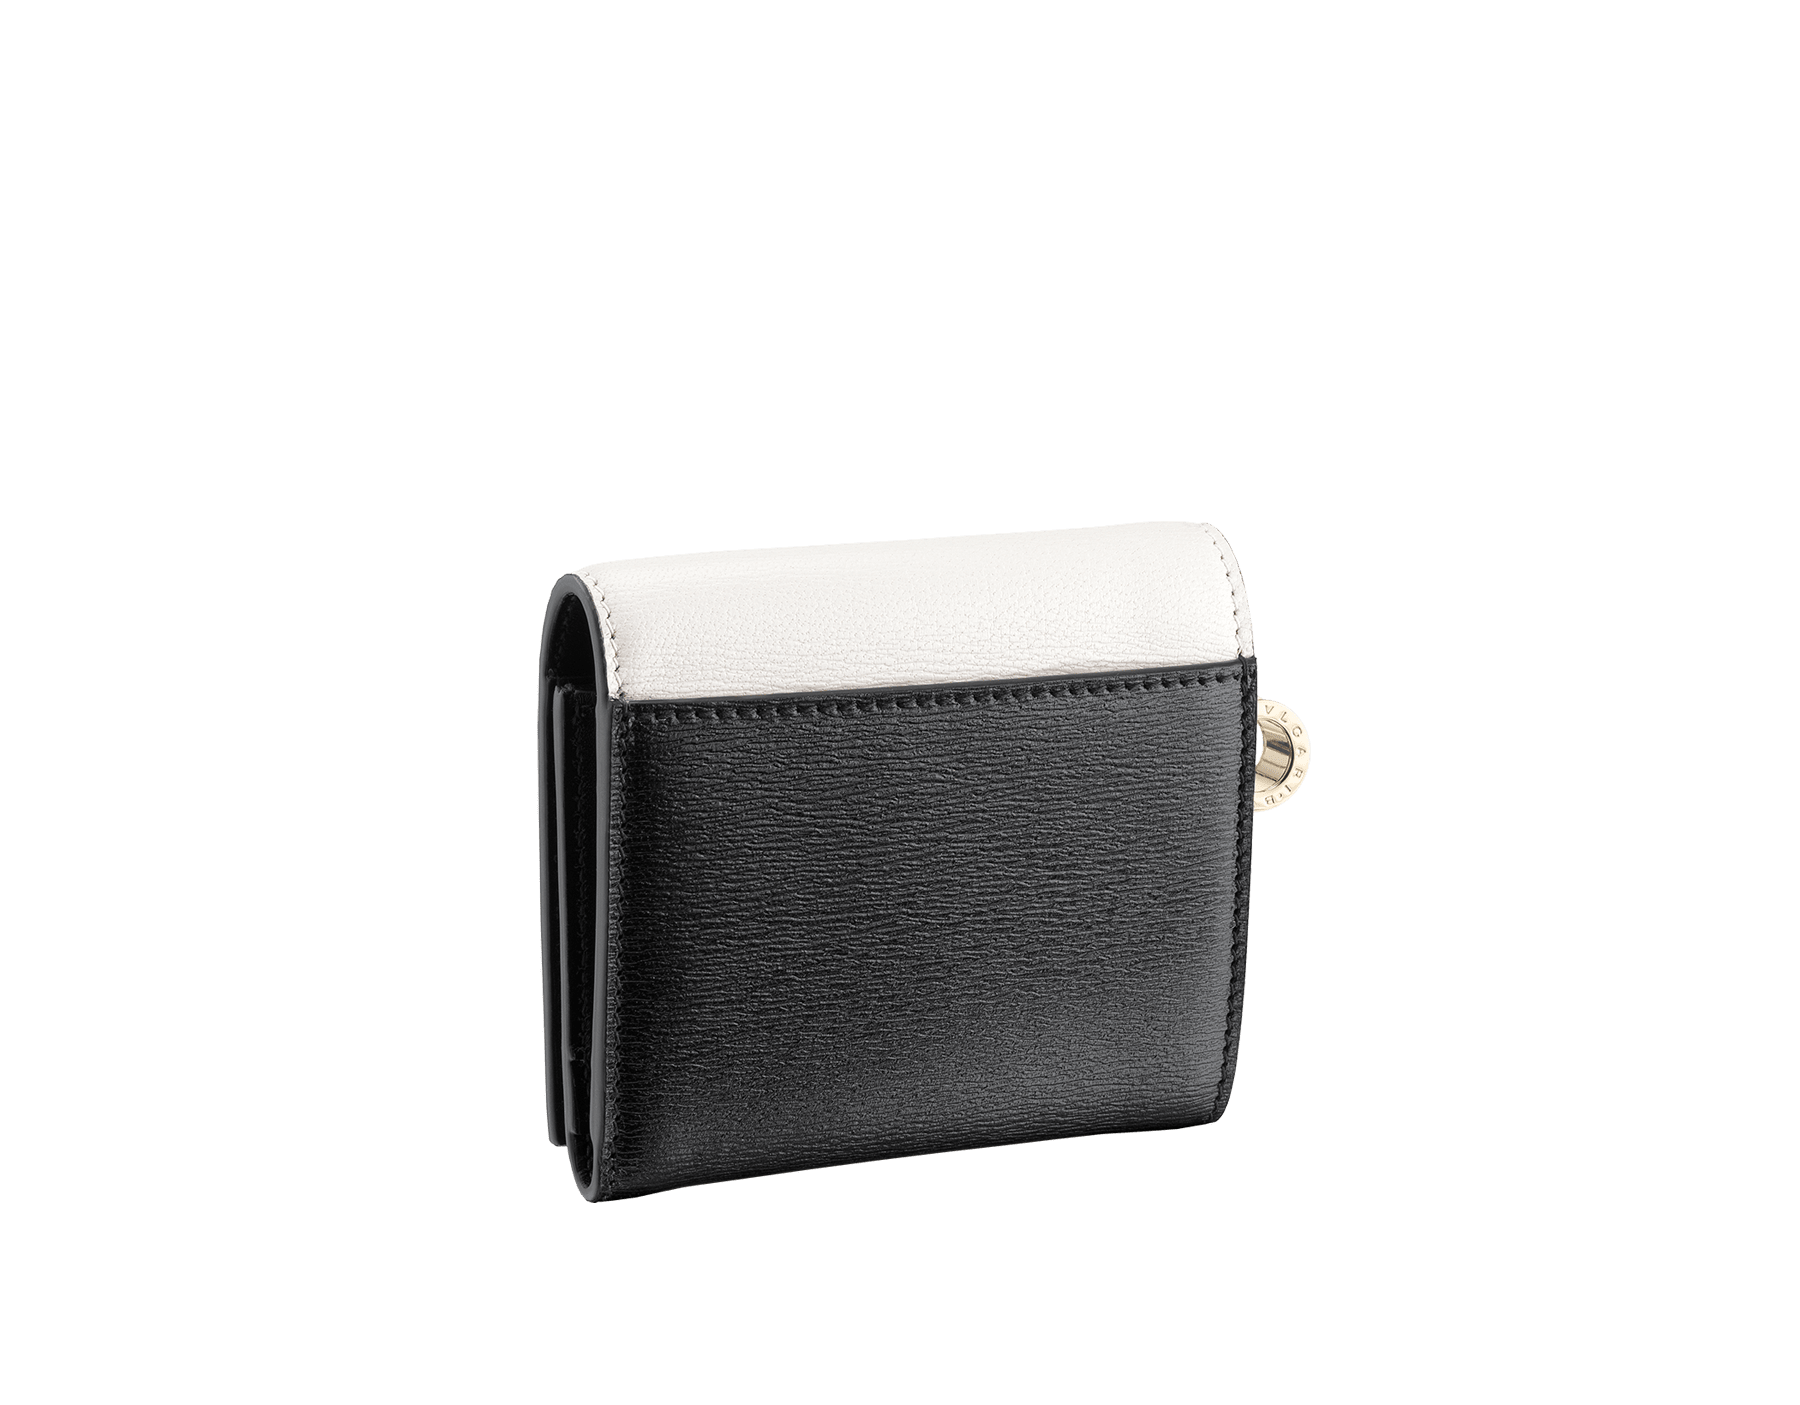 B.zero1 super compact wallet in white and black goatskin. Iconic B.zero1 charm in light gold plated brass. BZA-SUPERCOMPACT image 3